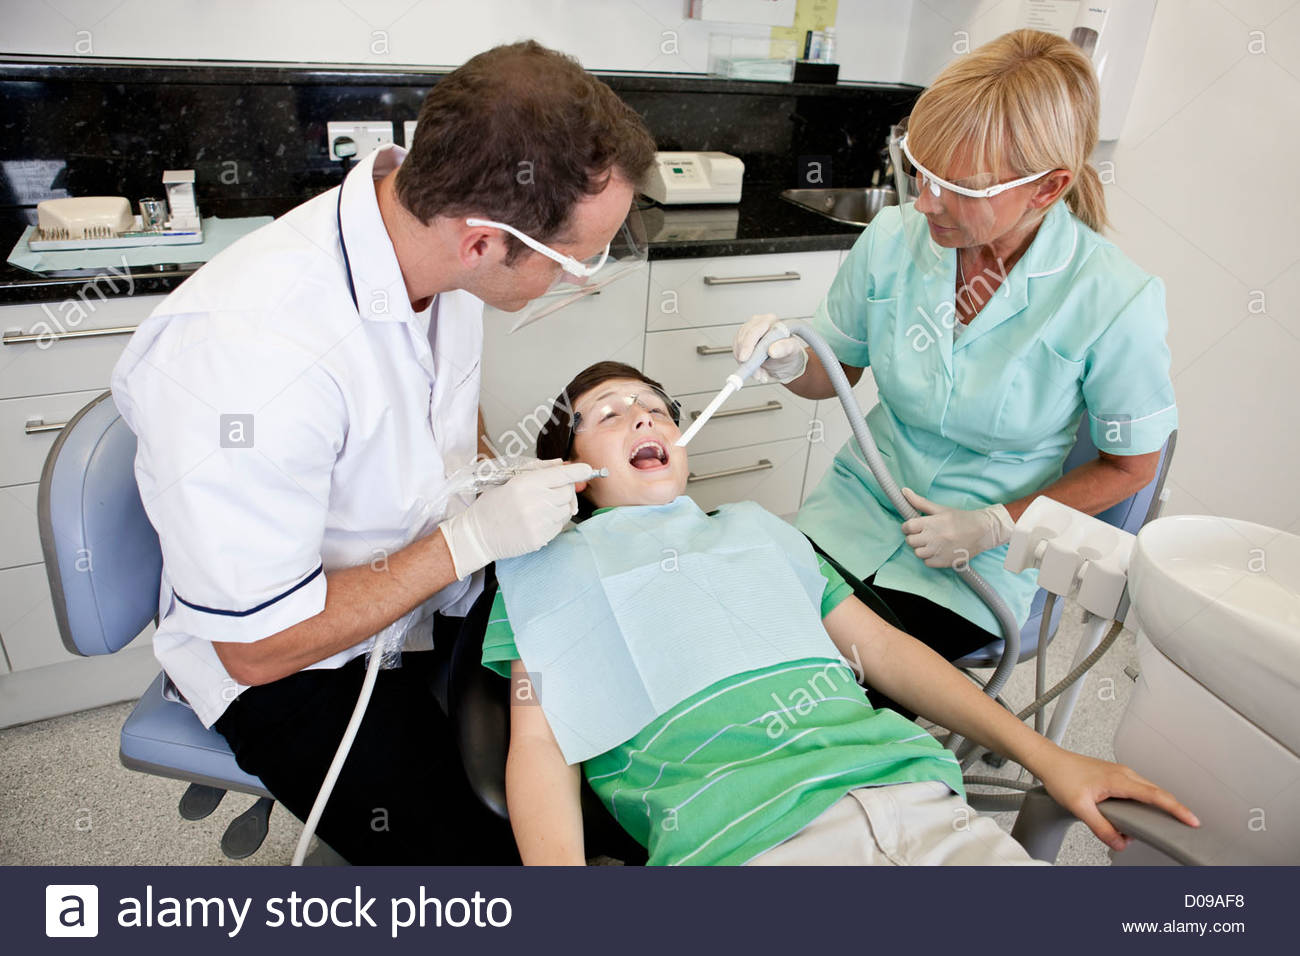 A young boy patient having dental treatment, looking scared - Stock Image